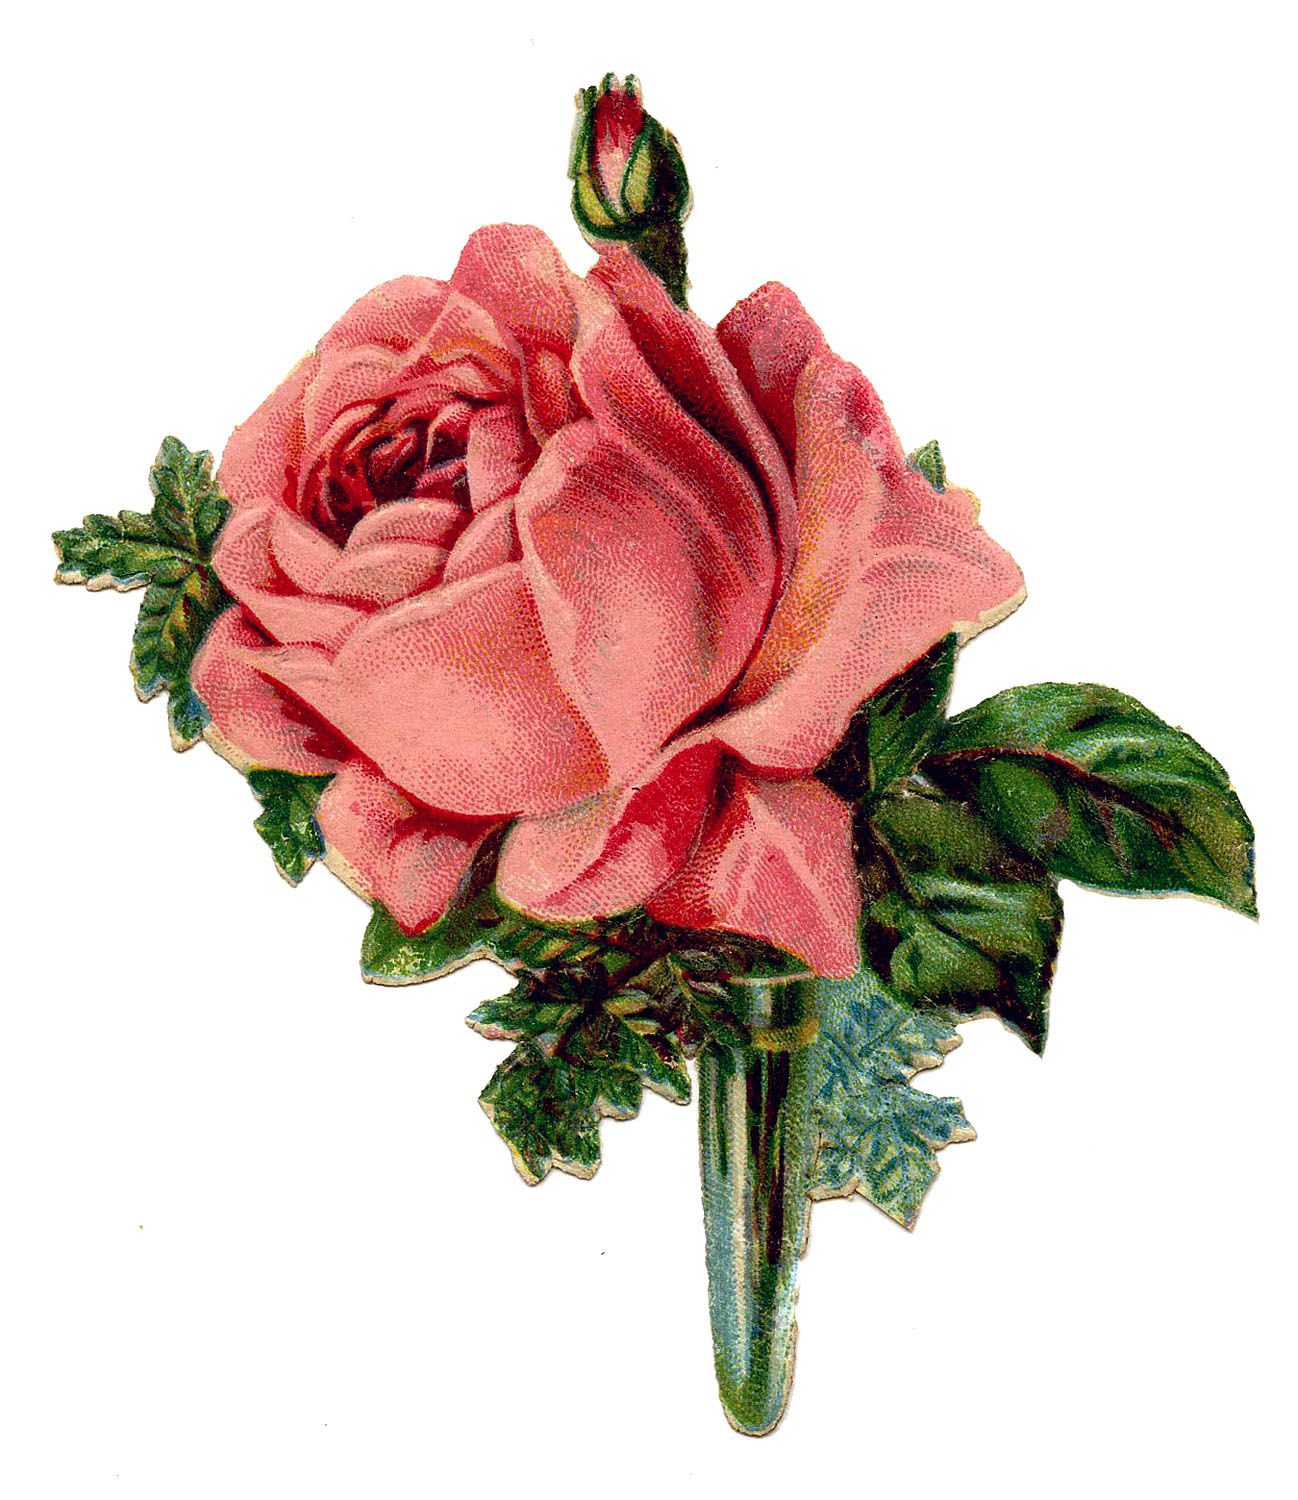 Vintage Graphic - Pink Rose Boutonniere - The Graphics Fairy